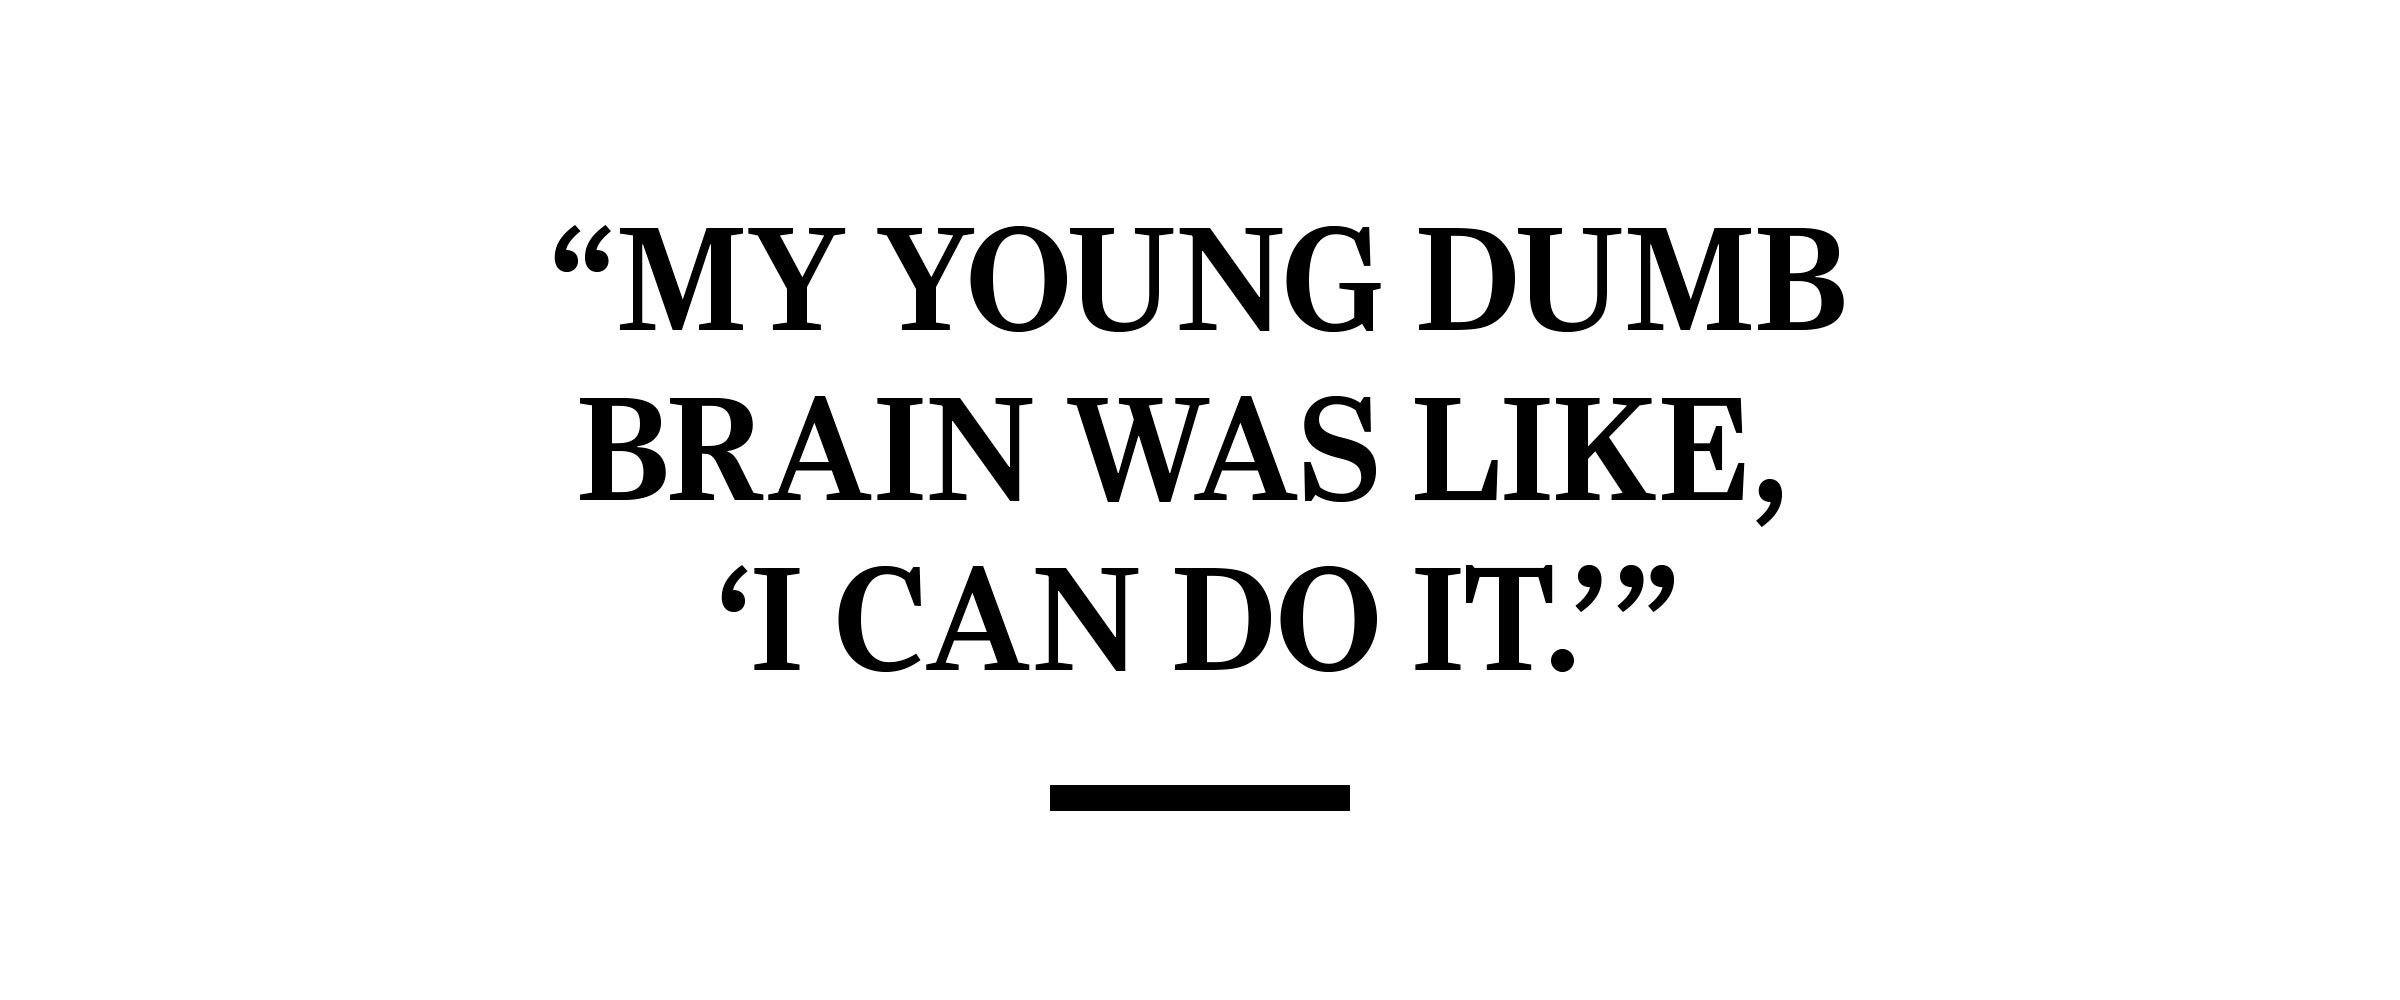 """text: """"My young dumb brain was like, 'I can do it.'"""""""